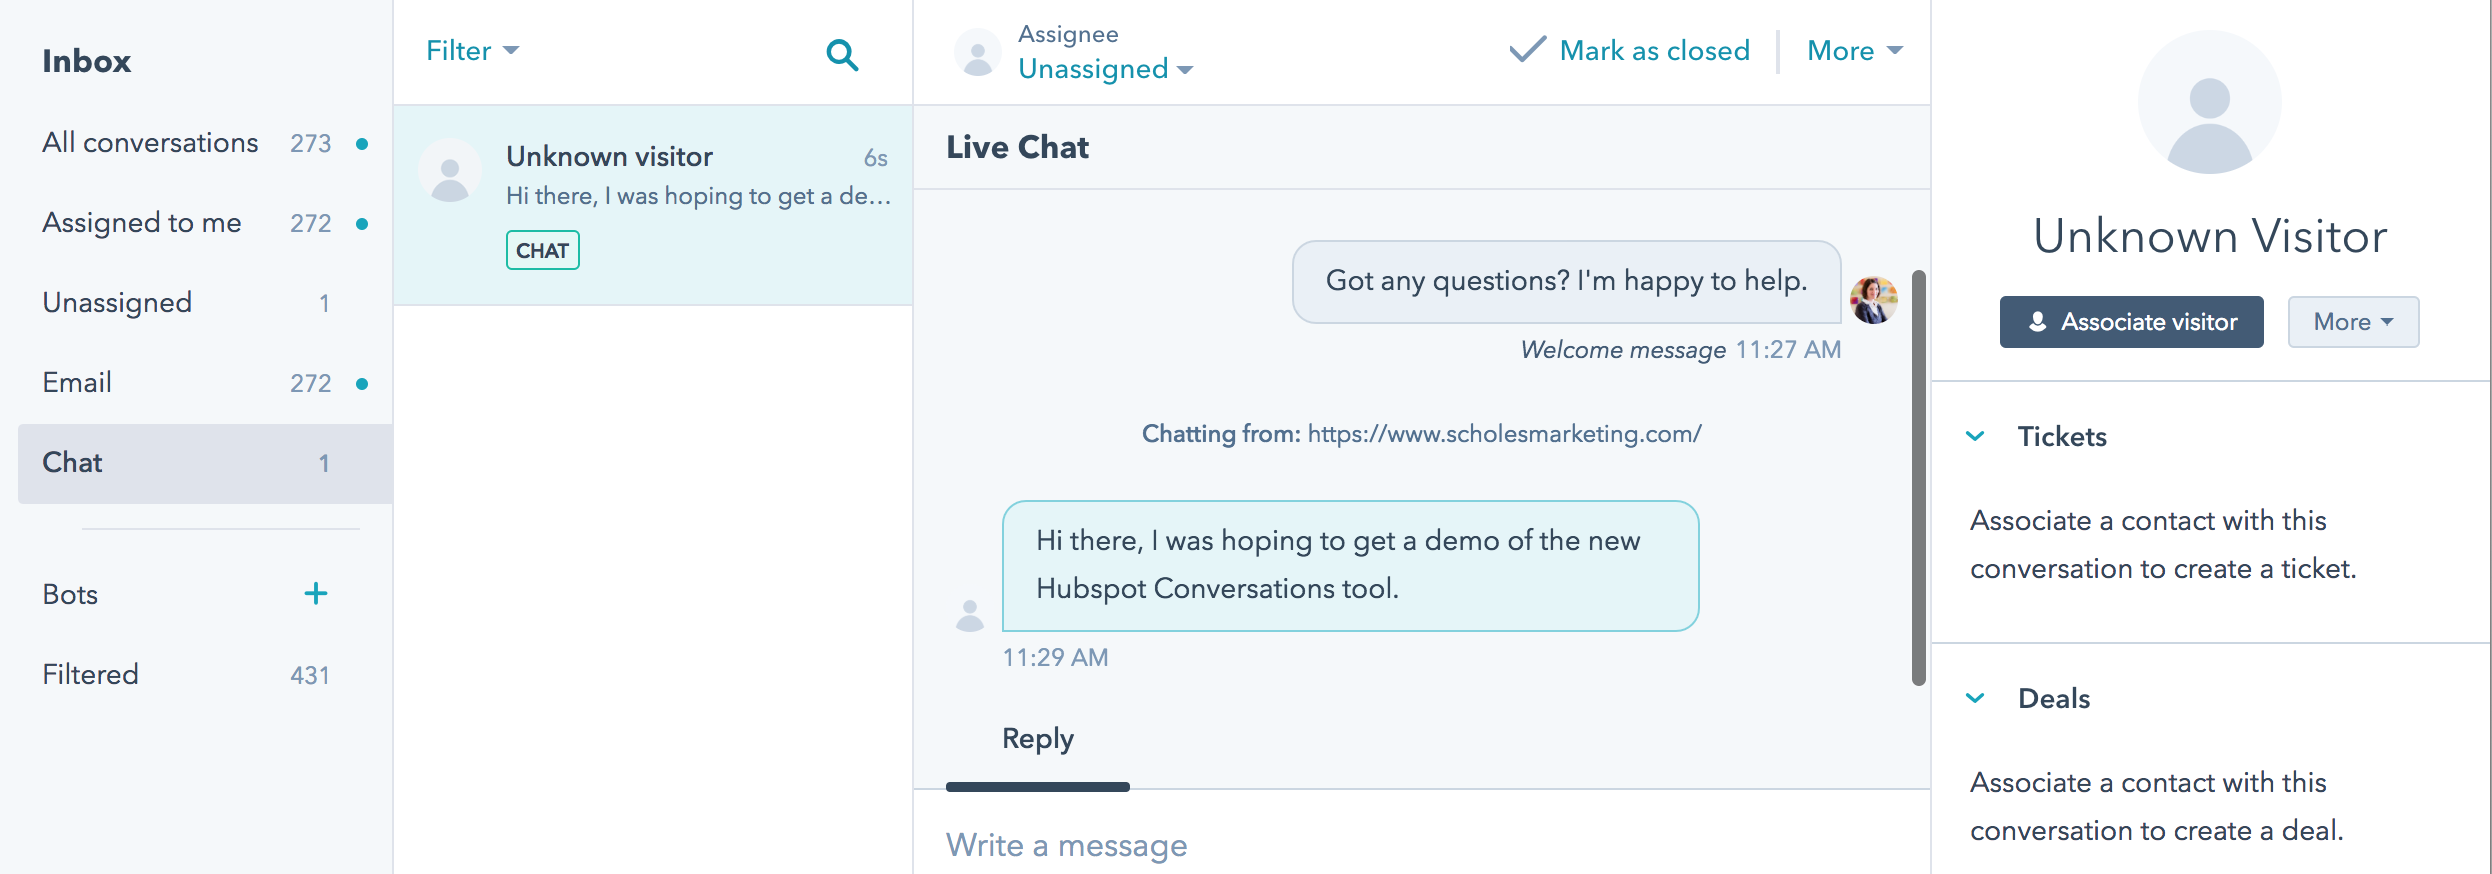 HubSpot Conversations inbox offers everything in one spot